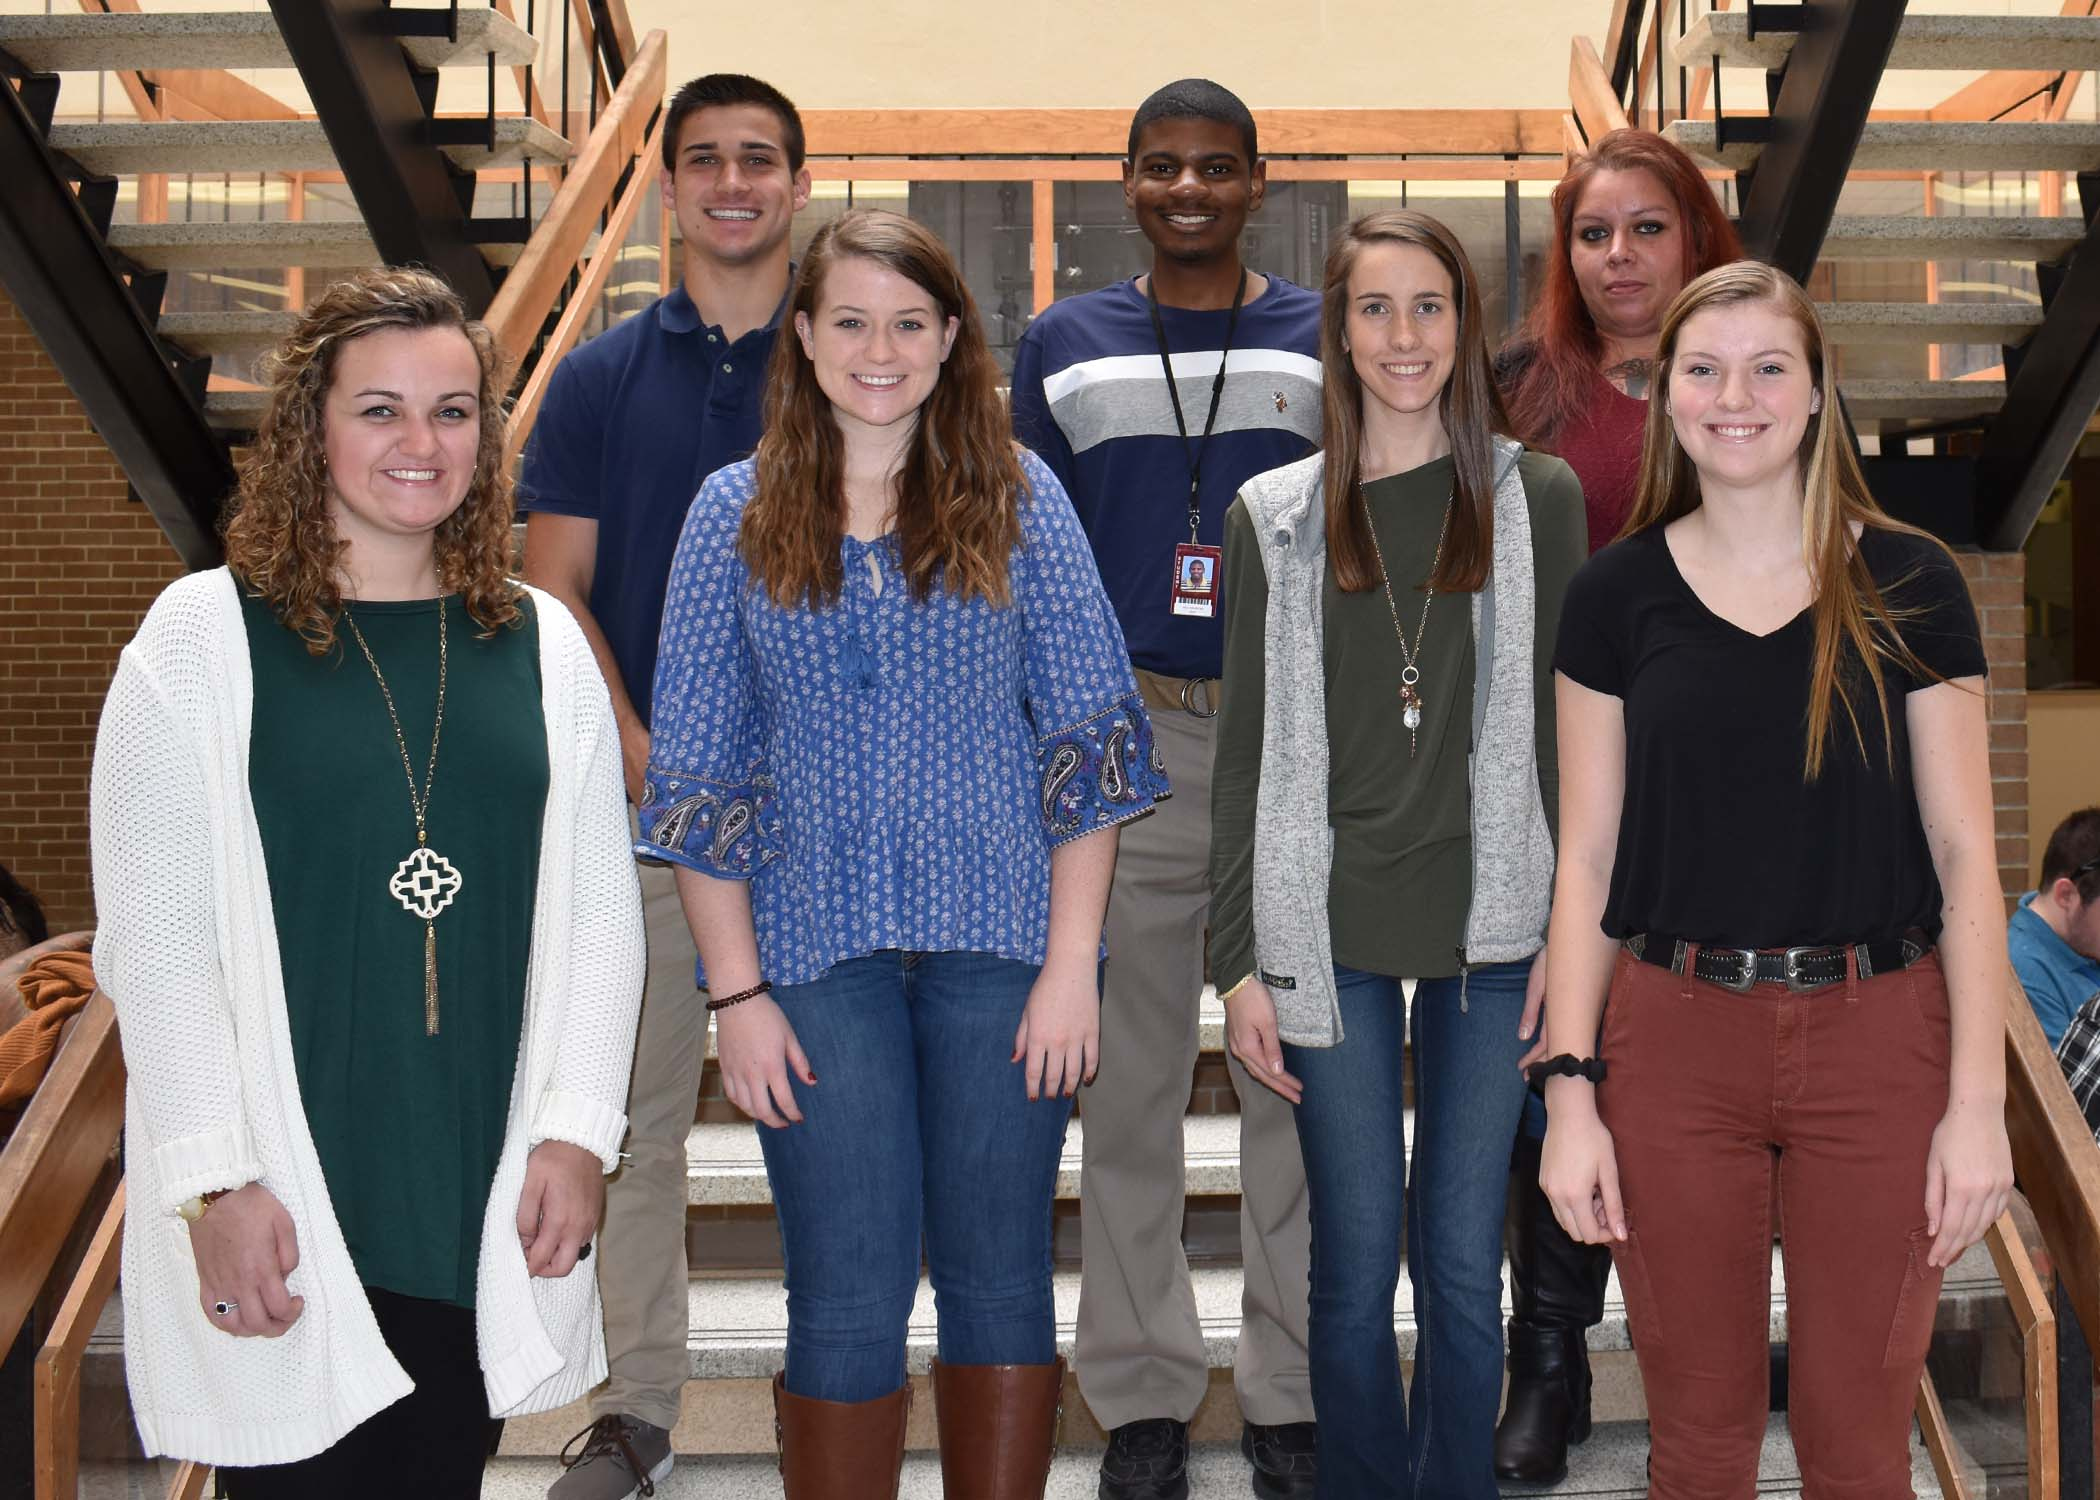 Pictured left to right are Emily Hill of Kinston, Mildred Dare Blizzard Scholarship; Kelsey Neathery of La Grange, UNC - Lenoir Healthcare; Kimberly Radford of Pink Hill, LCC Guarantee Scholarship; Toree Marak of Goldsboro, The Schechter Scholarship; Back Row, Nathan Zeagler of Deep Run, Byrd's Restaurant Scholarship; Rodrick Sutton of Goldsboro, E. Fred and Louise Moore Scholarship; Laura Smith of Seven Springs, Rodriguez Scholarship.